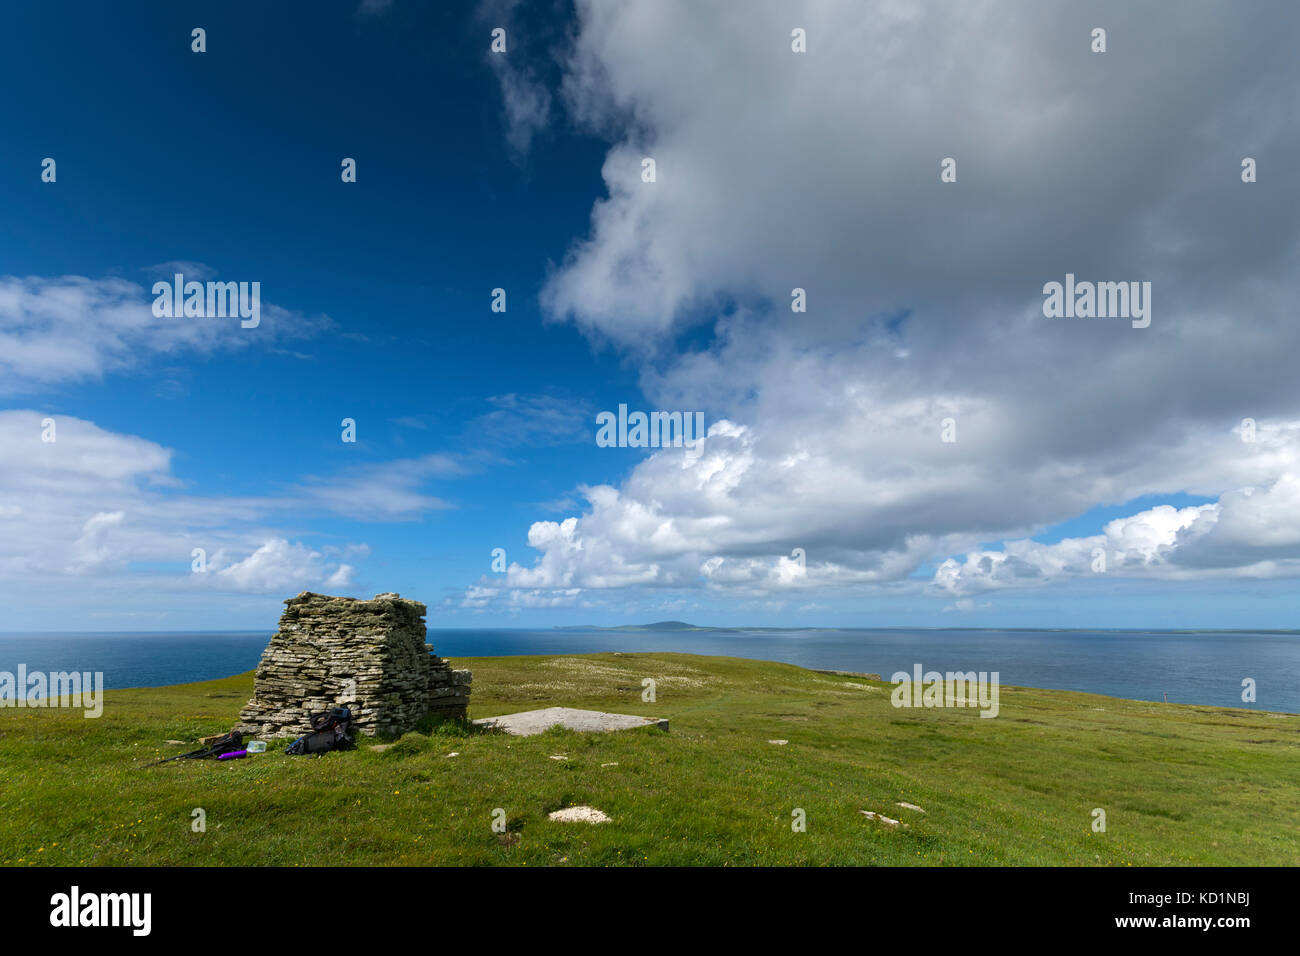 The island of Westray from the large cairn on Faraclett Head, Rousay, Orkney Islands, Scotland, UK. - Stock Image